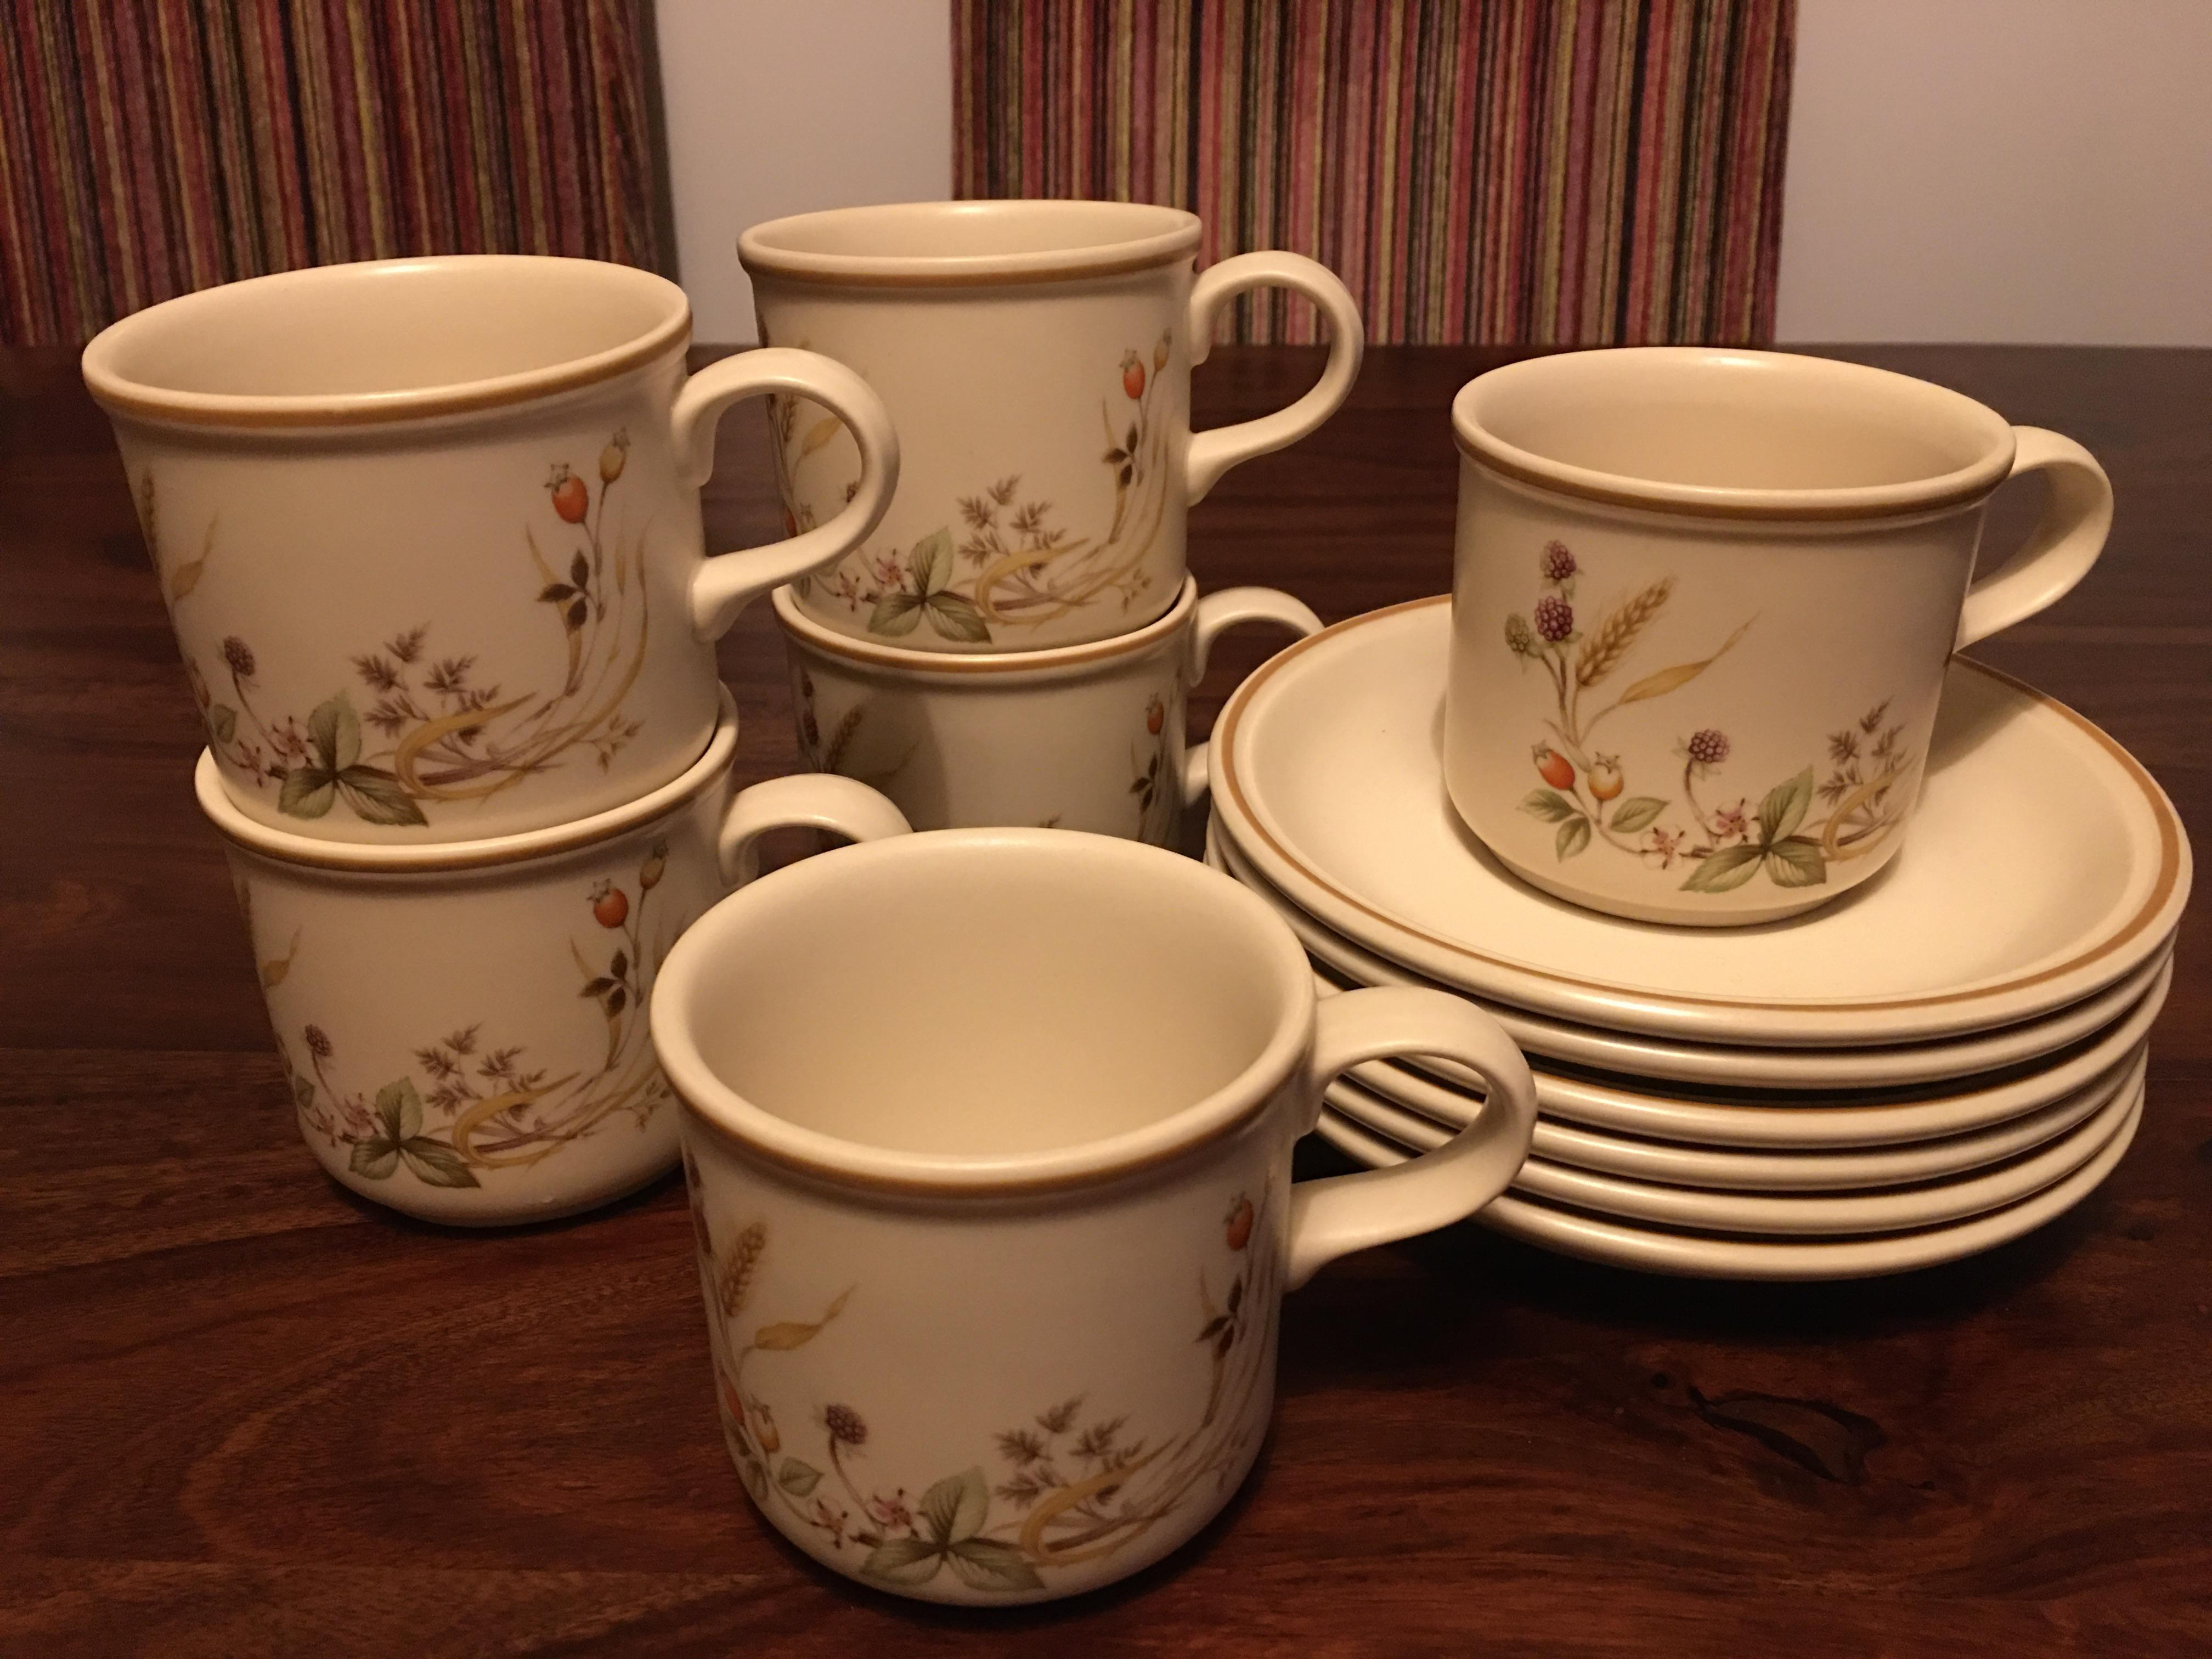 Marks & Spencer Harvest Regular Coffee Cups and Saucers